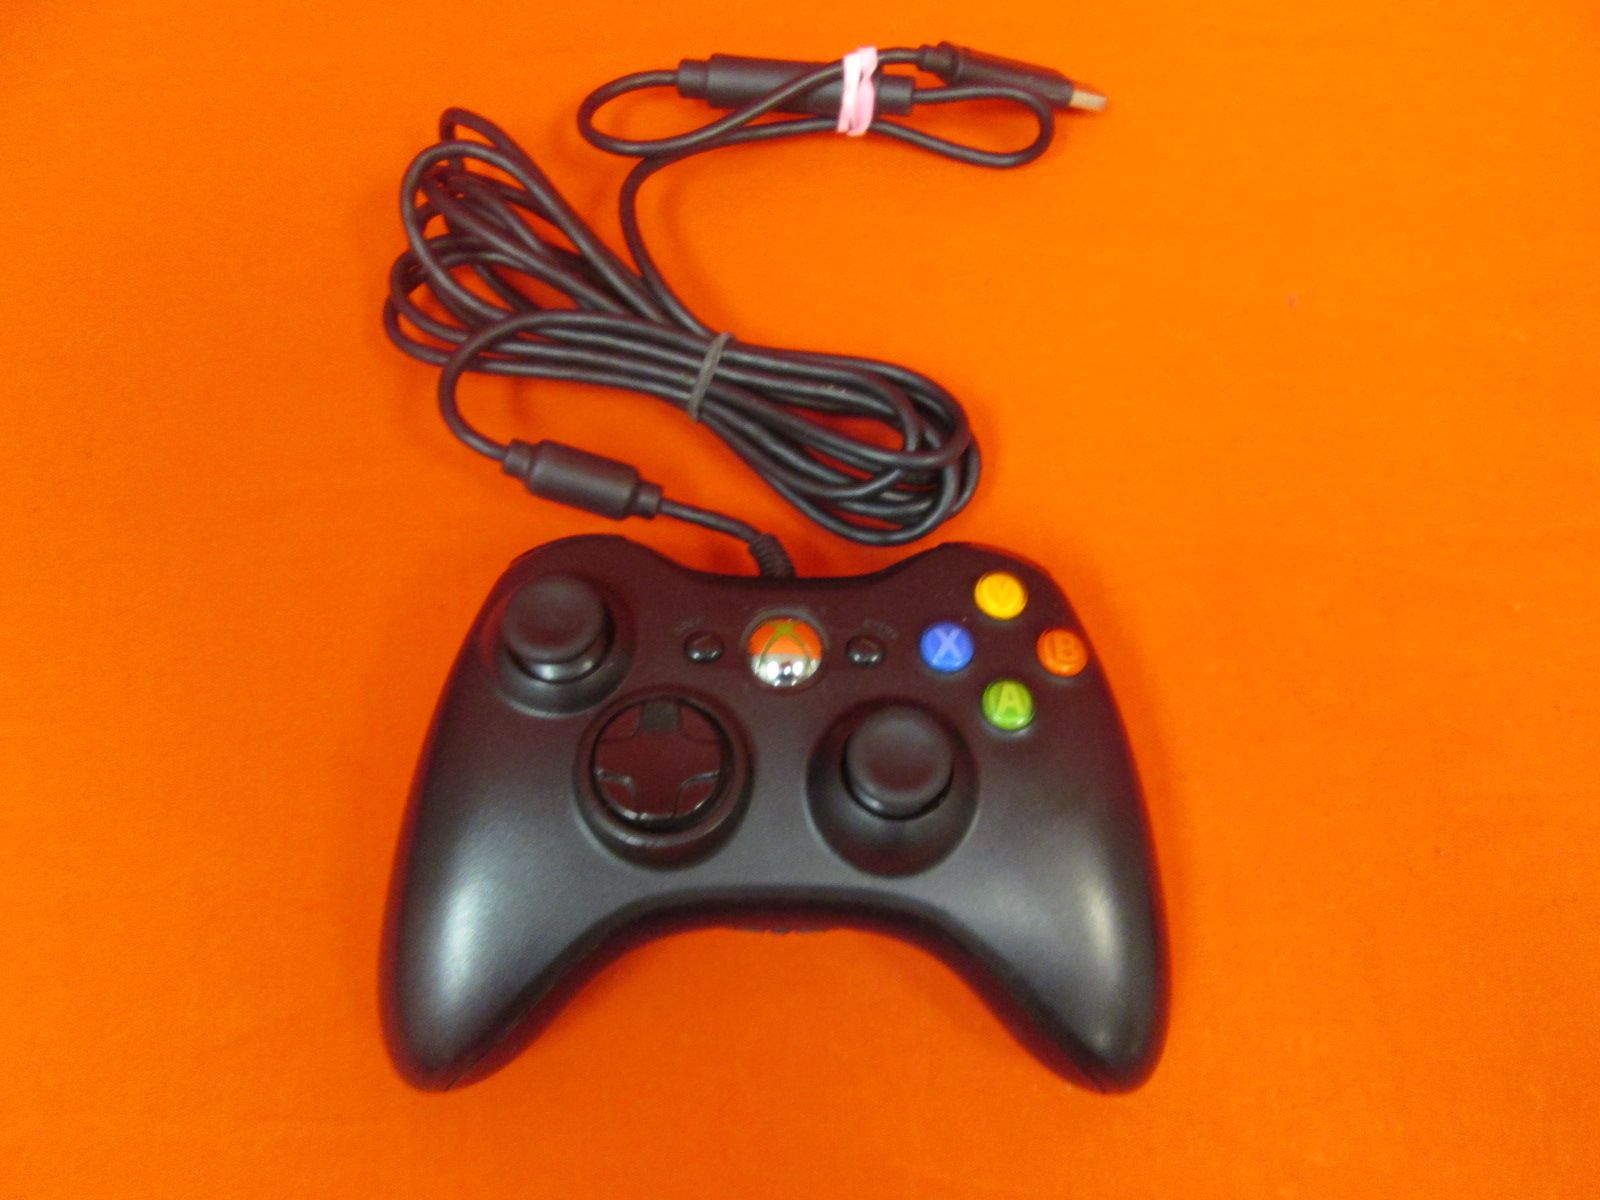 Microsoft Xbox 360 Wired Controller For Windows And Xbox 360 Console